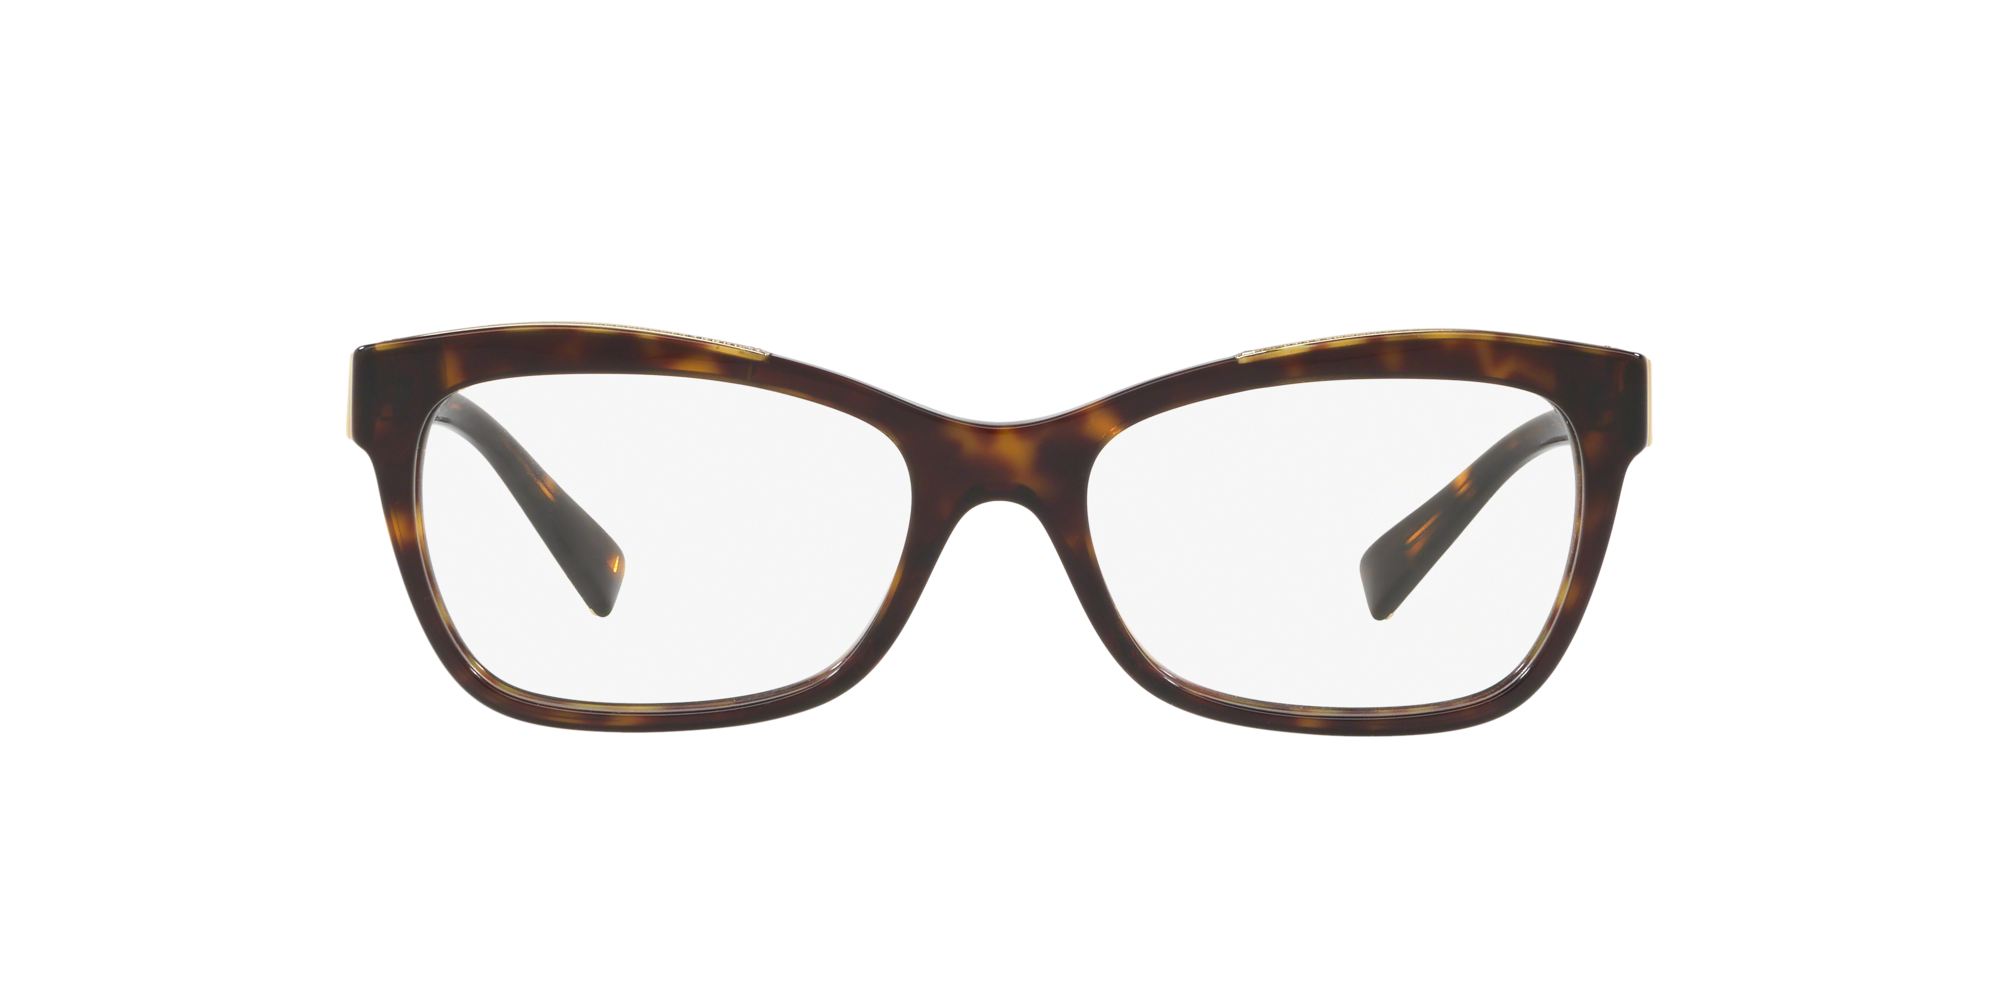 Image for TF2167 from LensCrafters | Glasses, Prescription Glasses Online, Eyewear